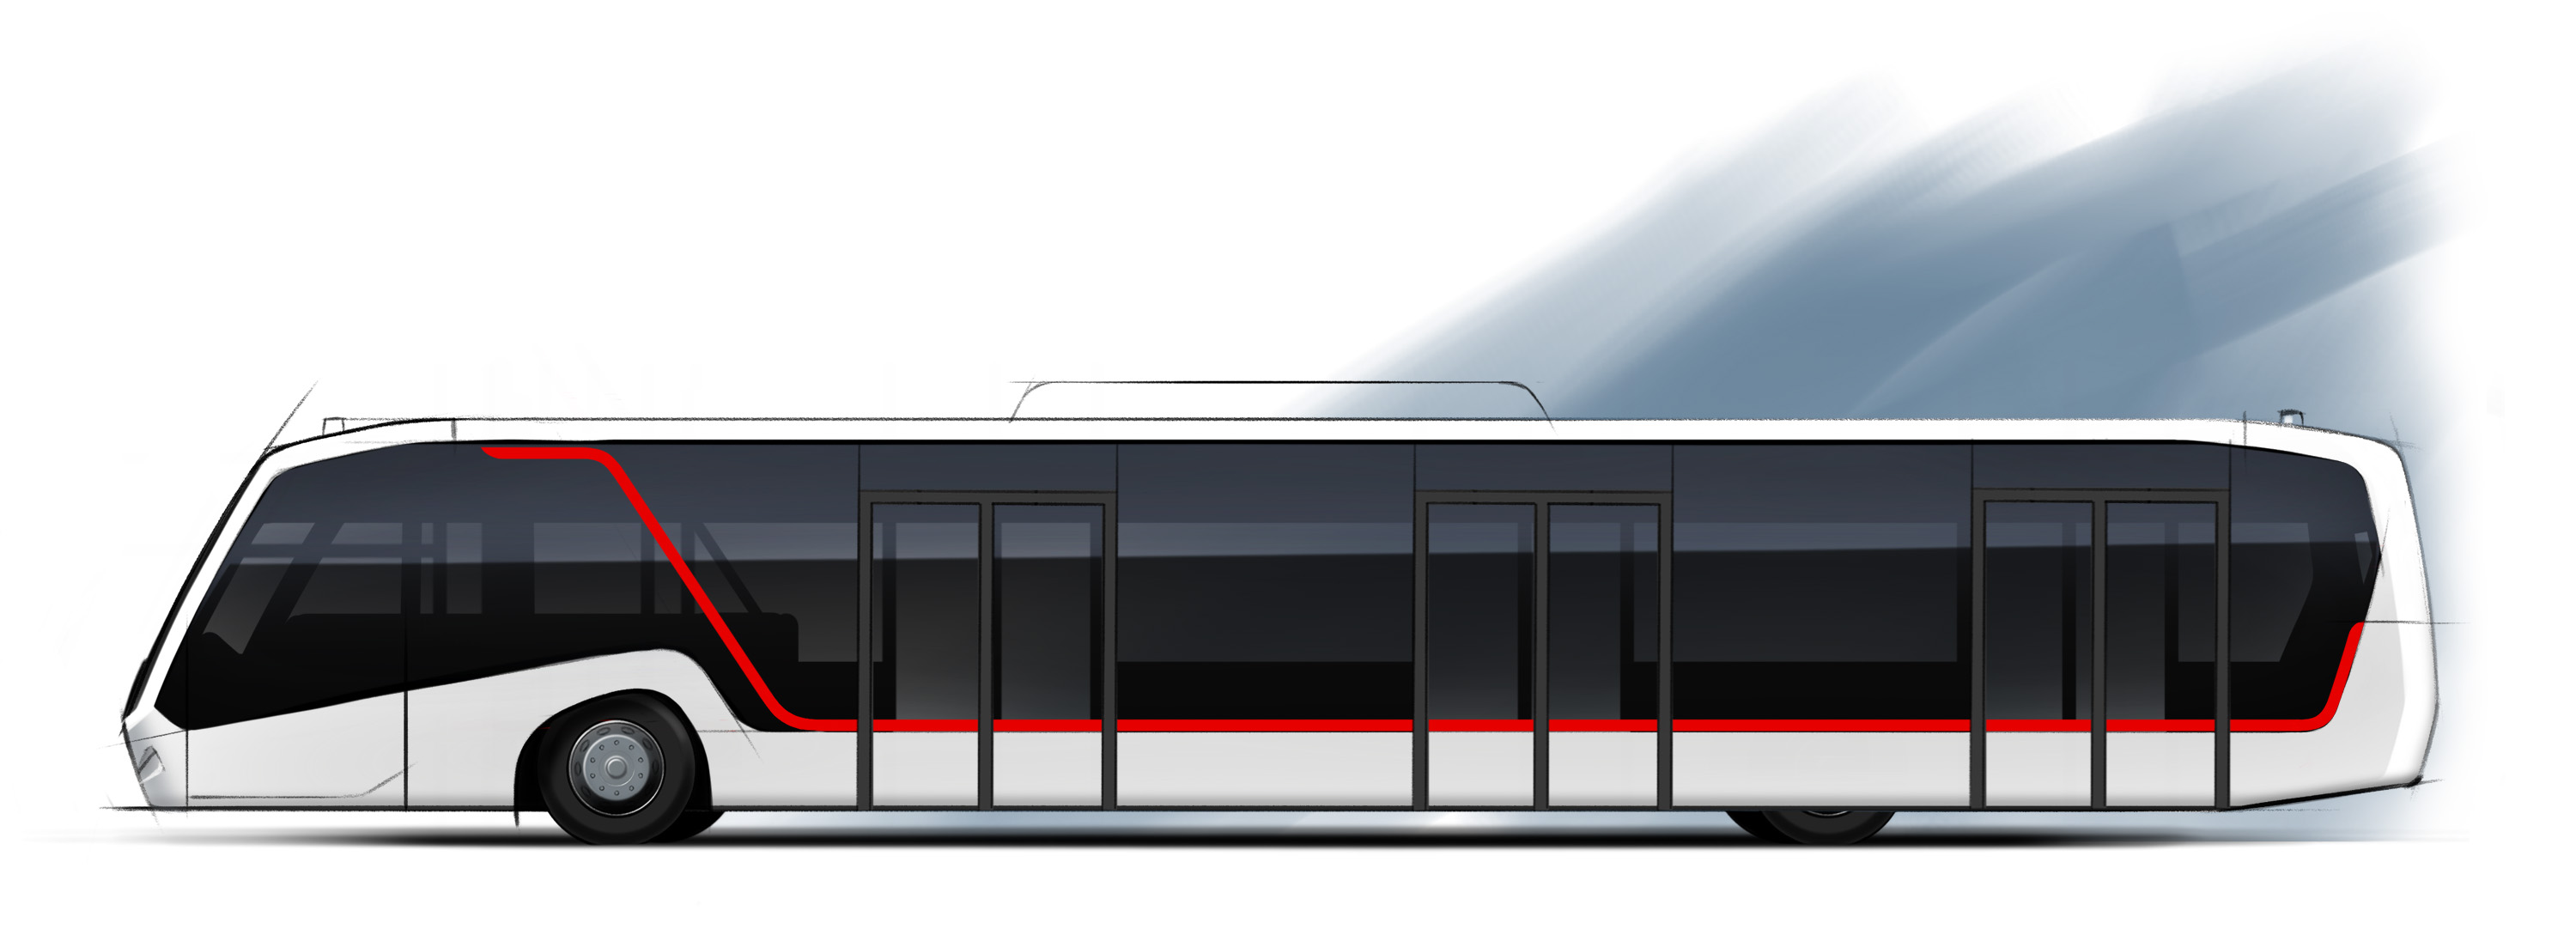 BMC Neoport Apron Bus Sketch